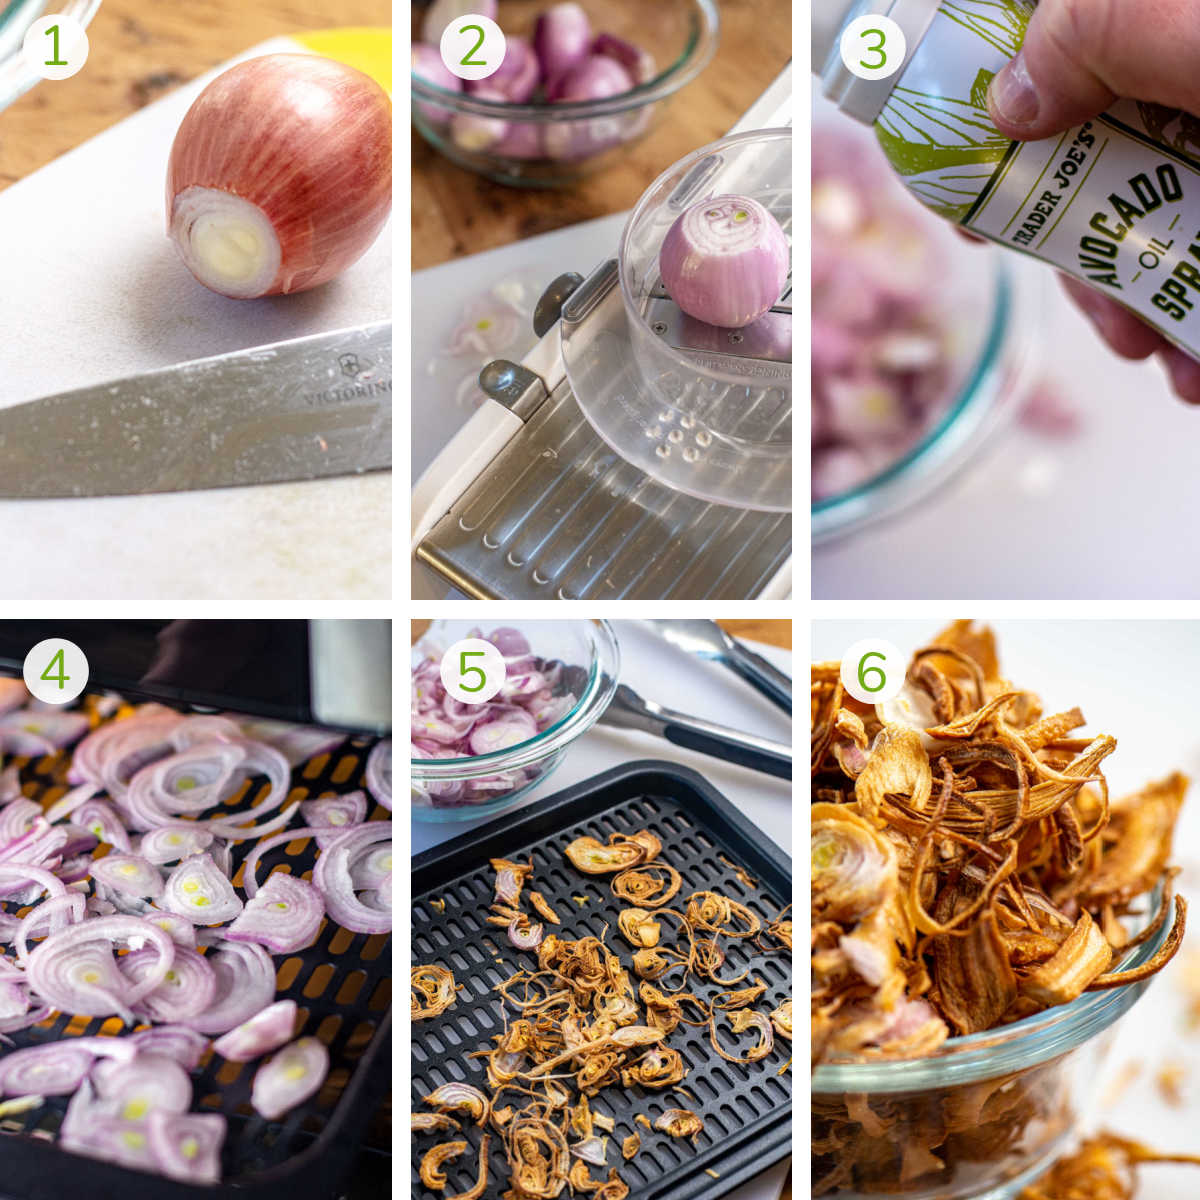 process photos showing cutting off the ends of the shallots, running it through a mandolin, and air frying them.